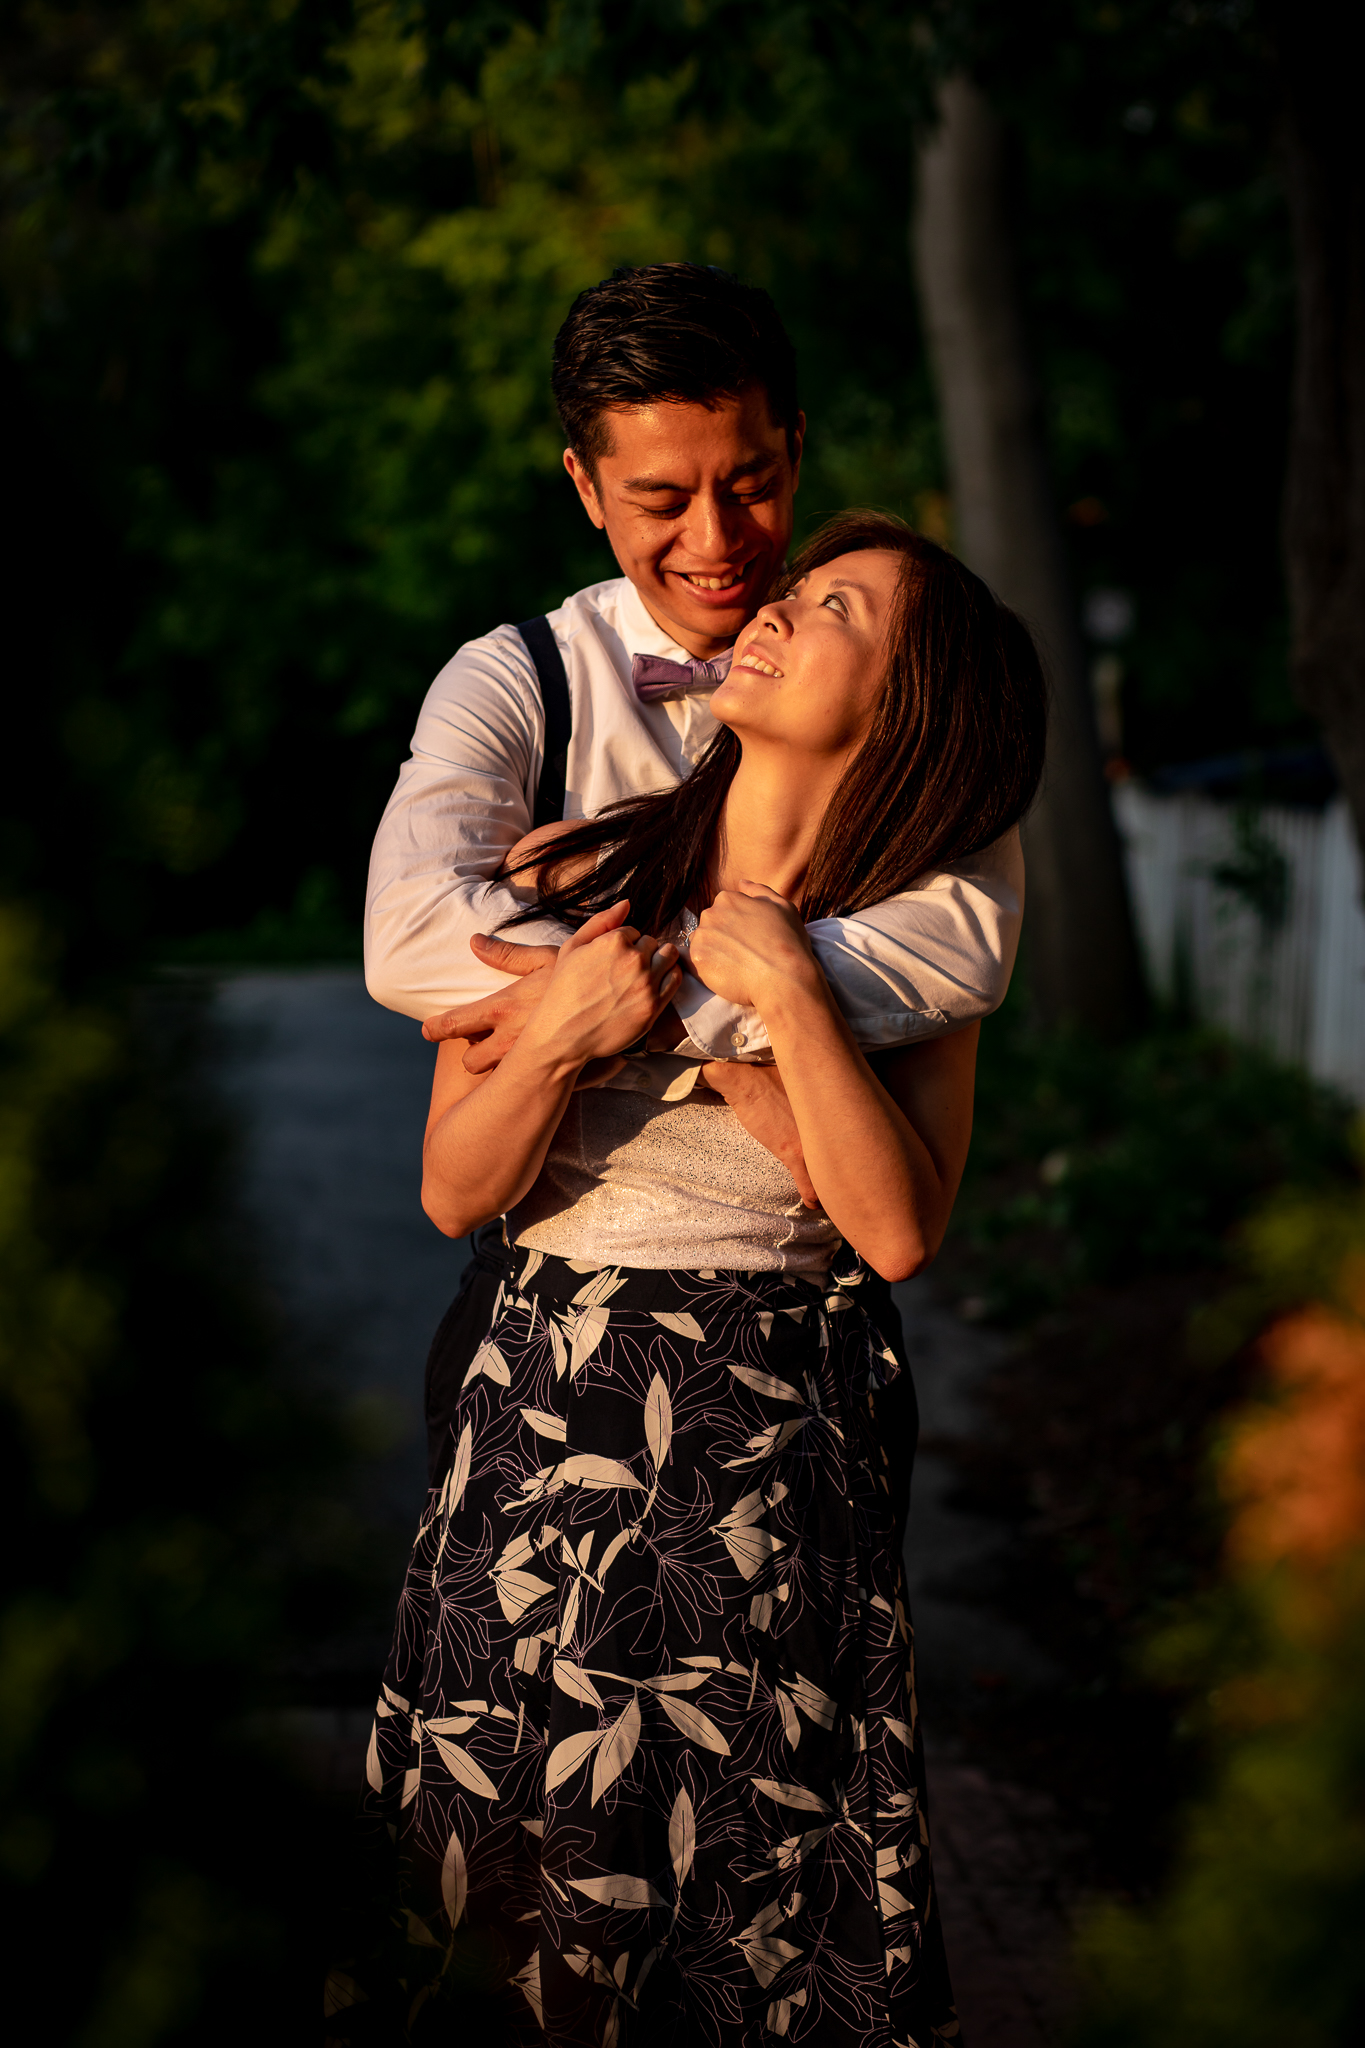 unionville-engagement-photos-10.jpg